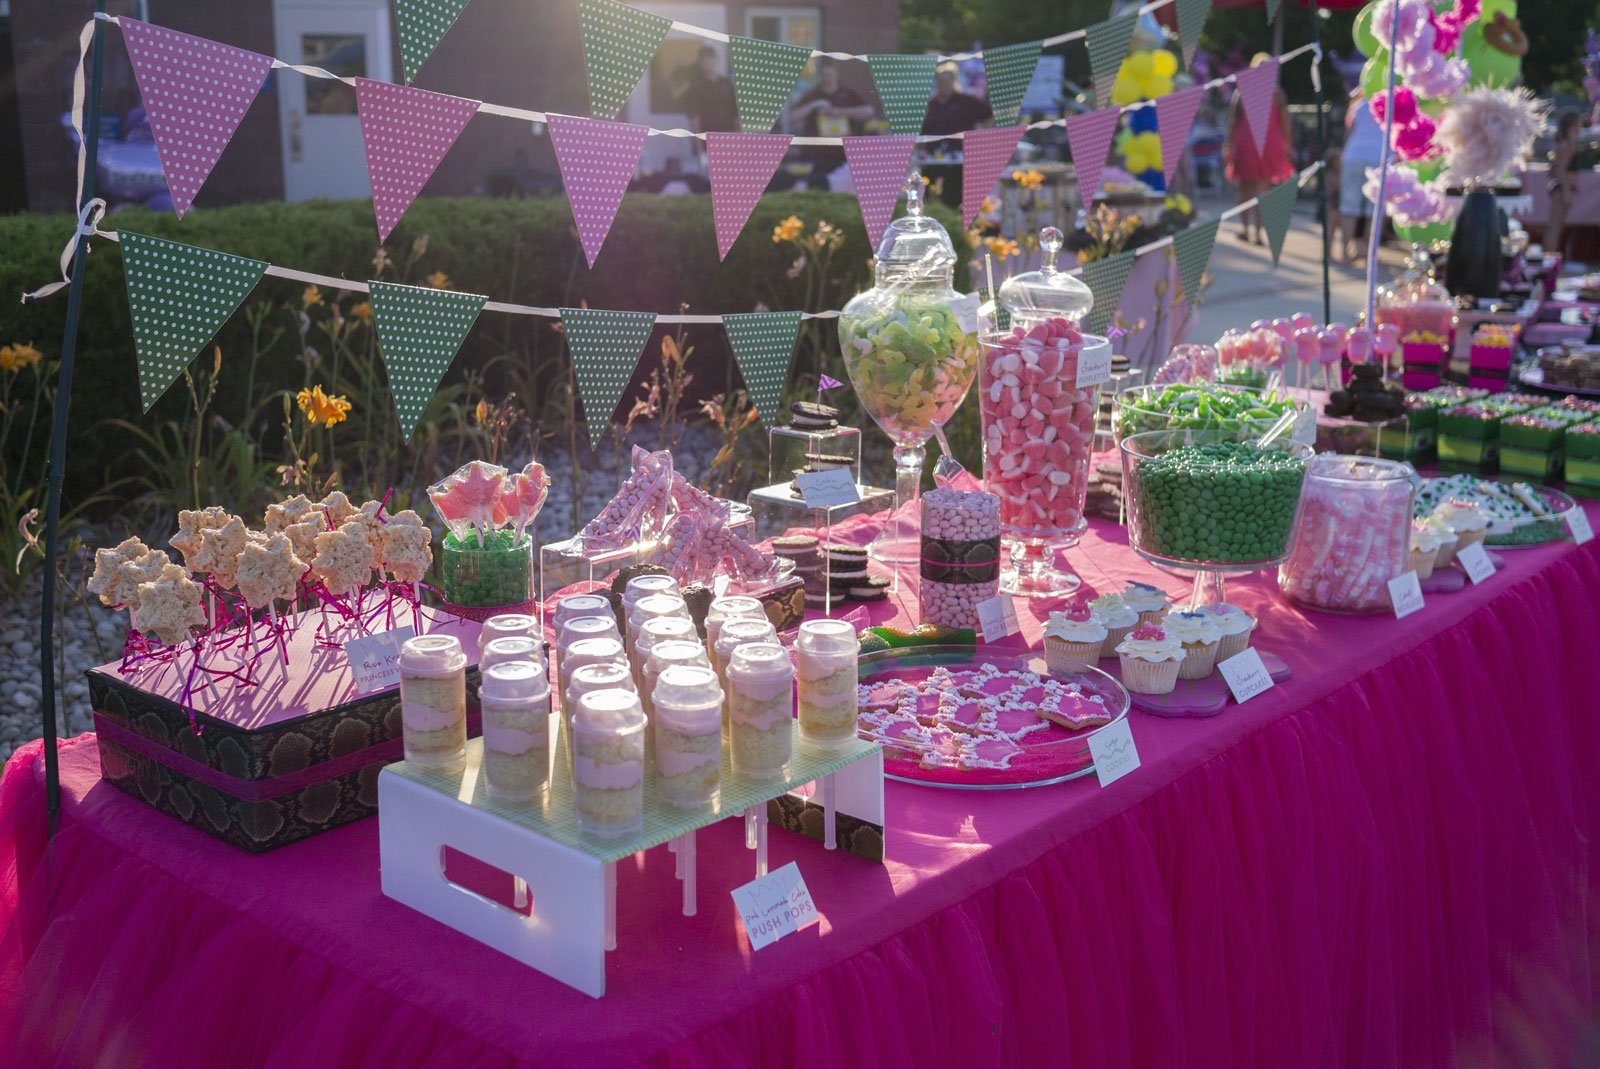 5th birthday themes ; 5th-birthday-party-ideas-for-a-girl